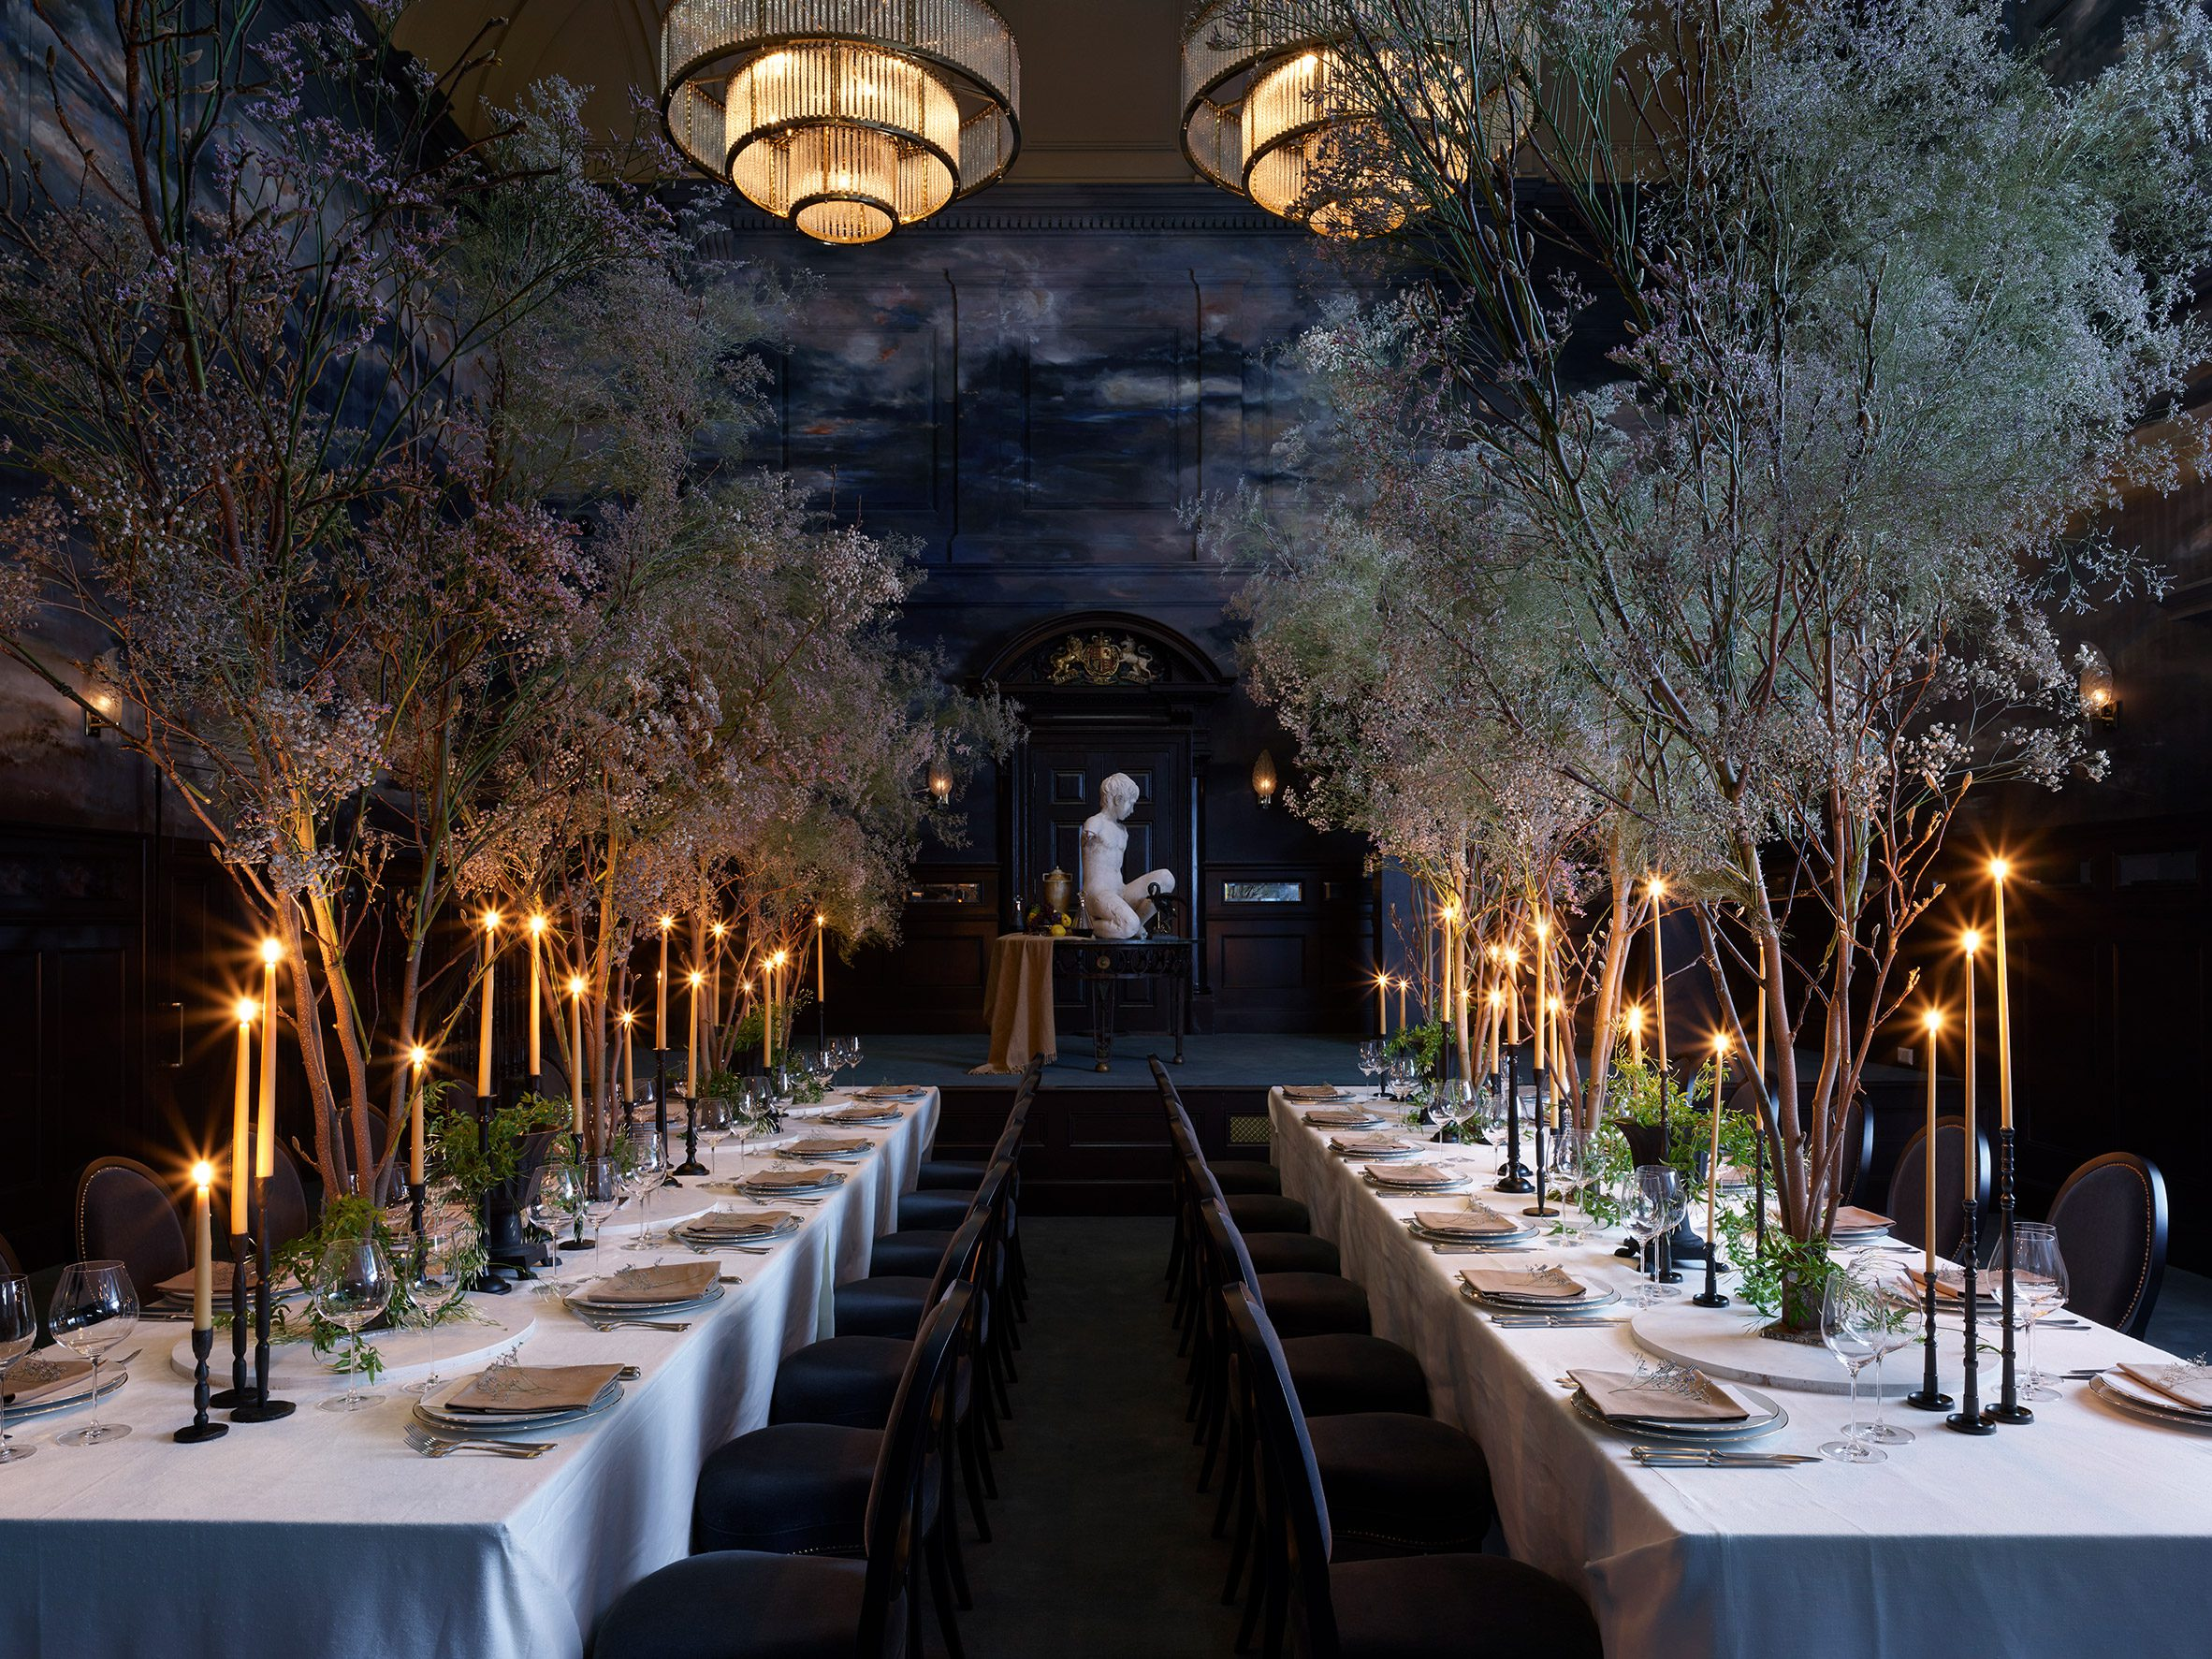 Magistrates' ballroom at NoMad London with dining tables